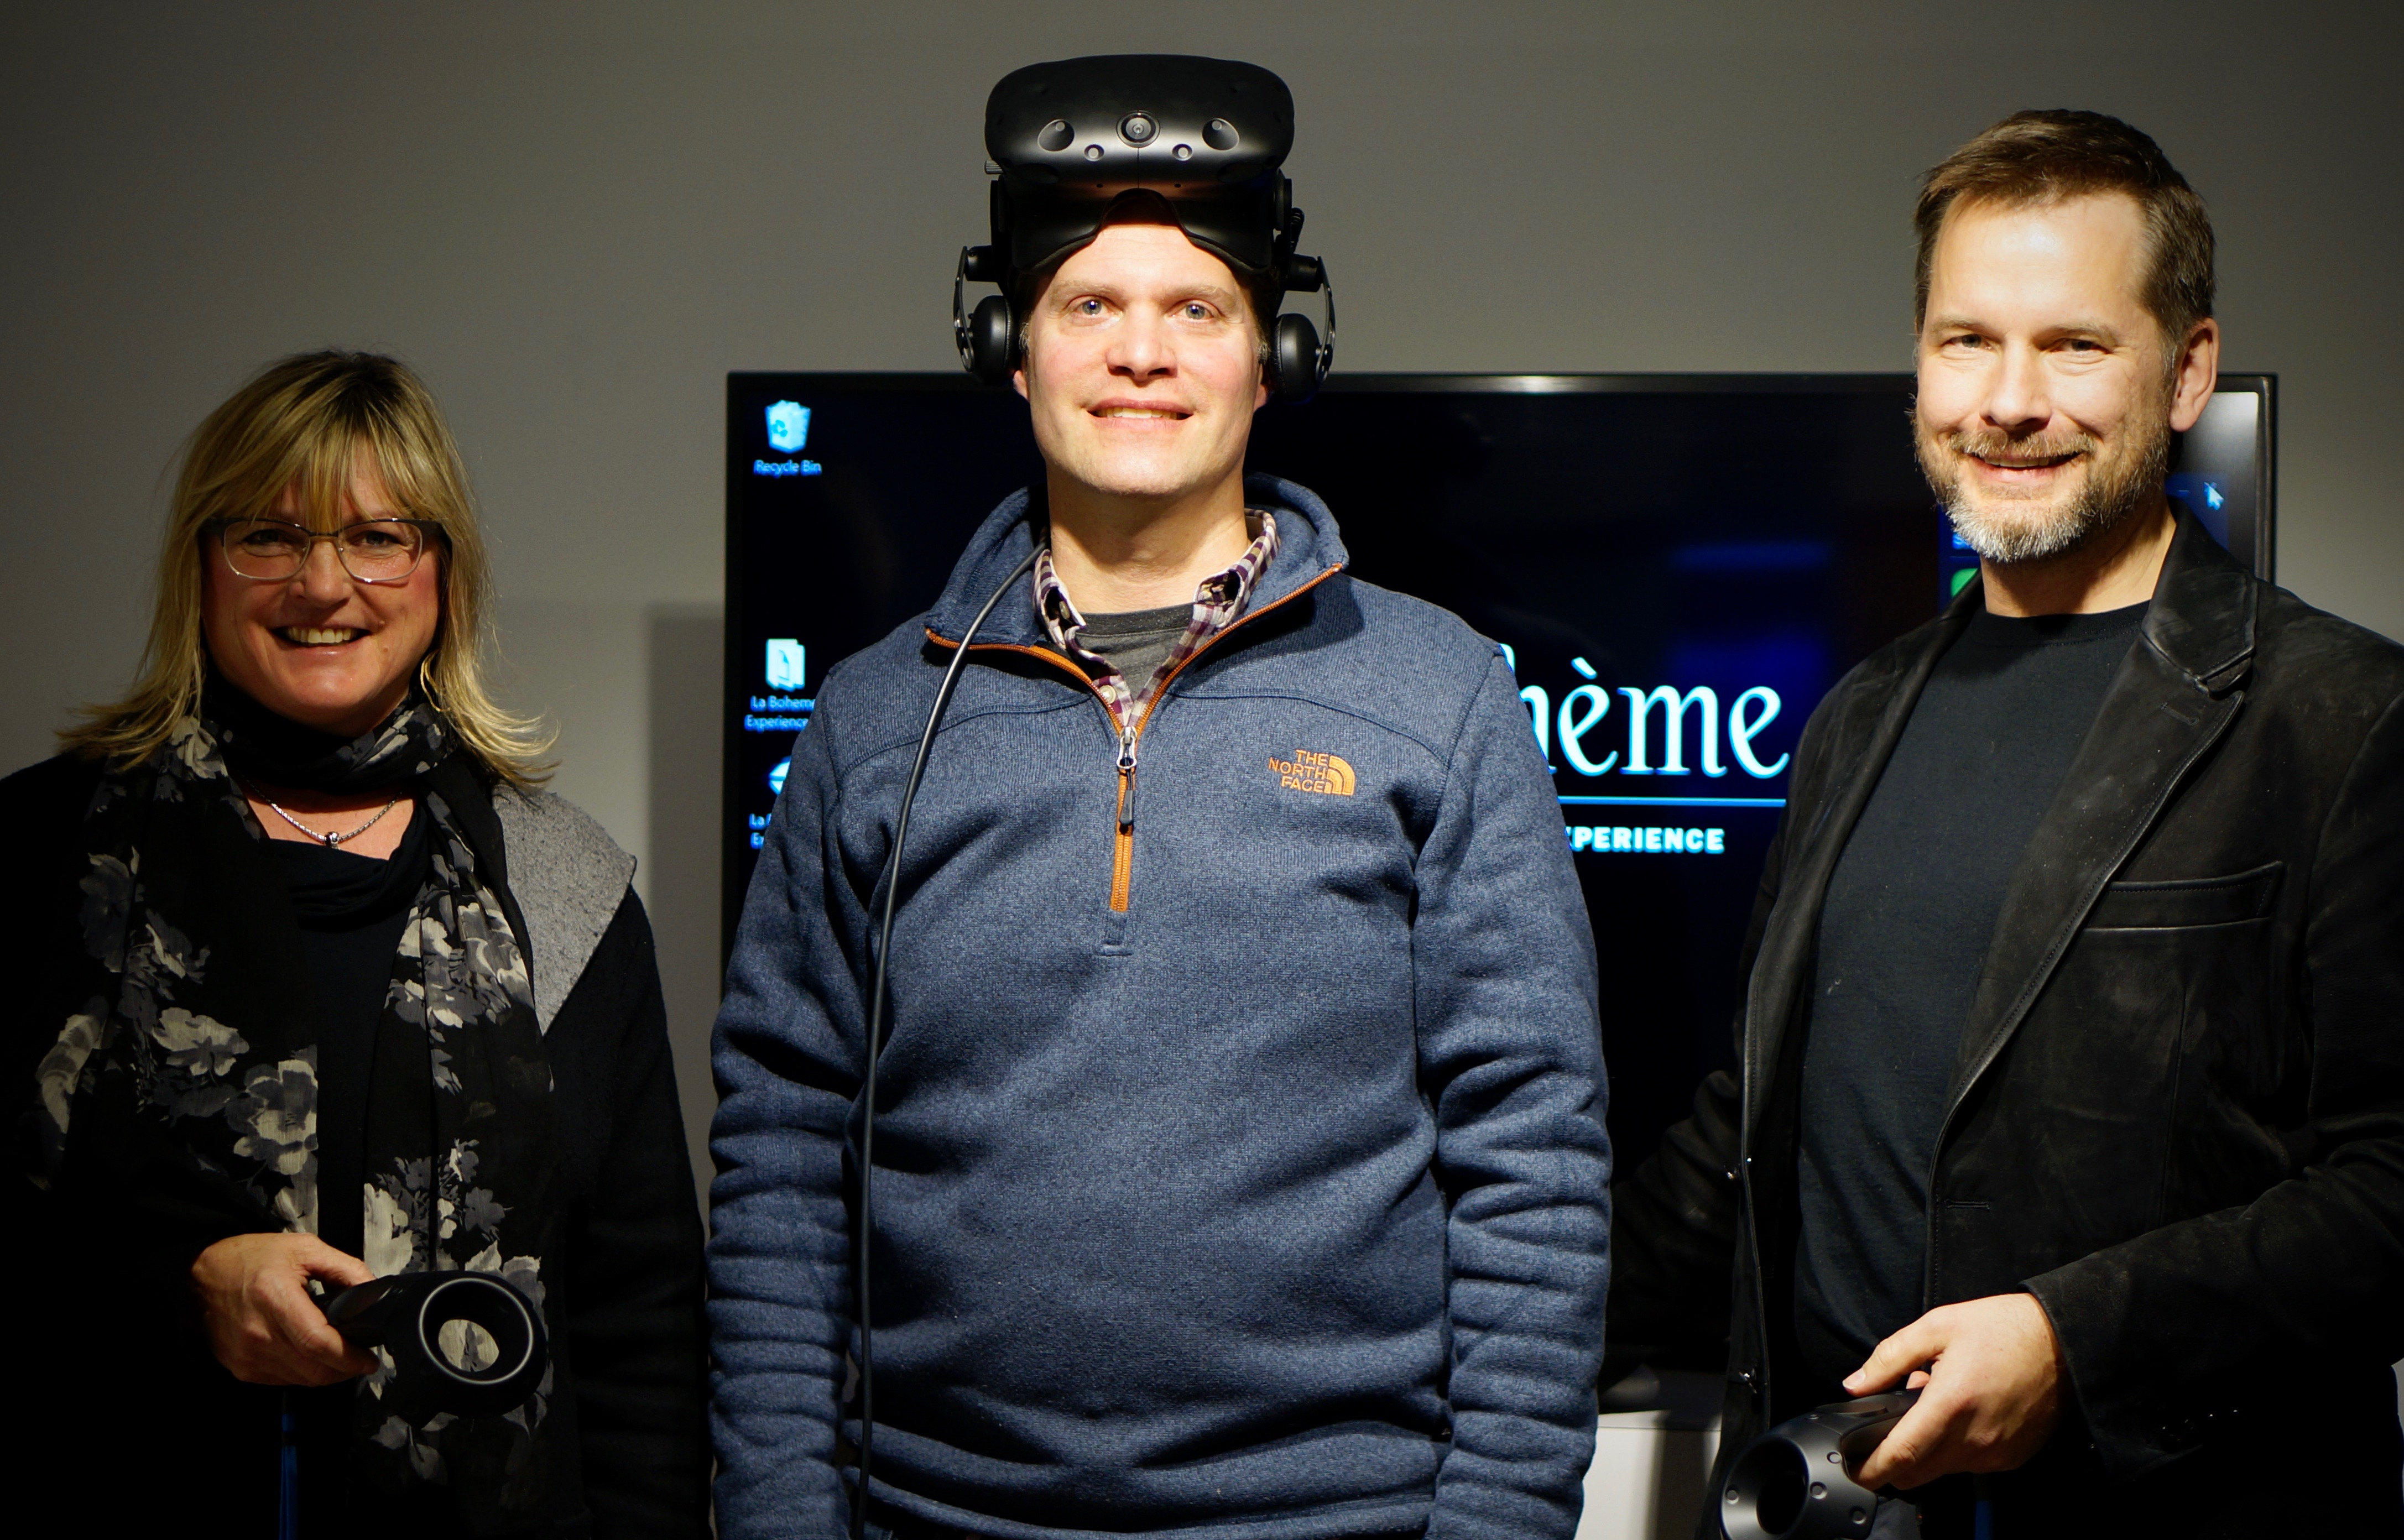 Photo: Experience La Boheme exhibition creative team